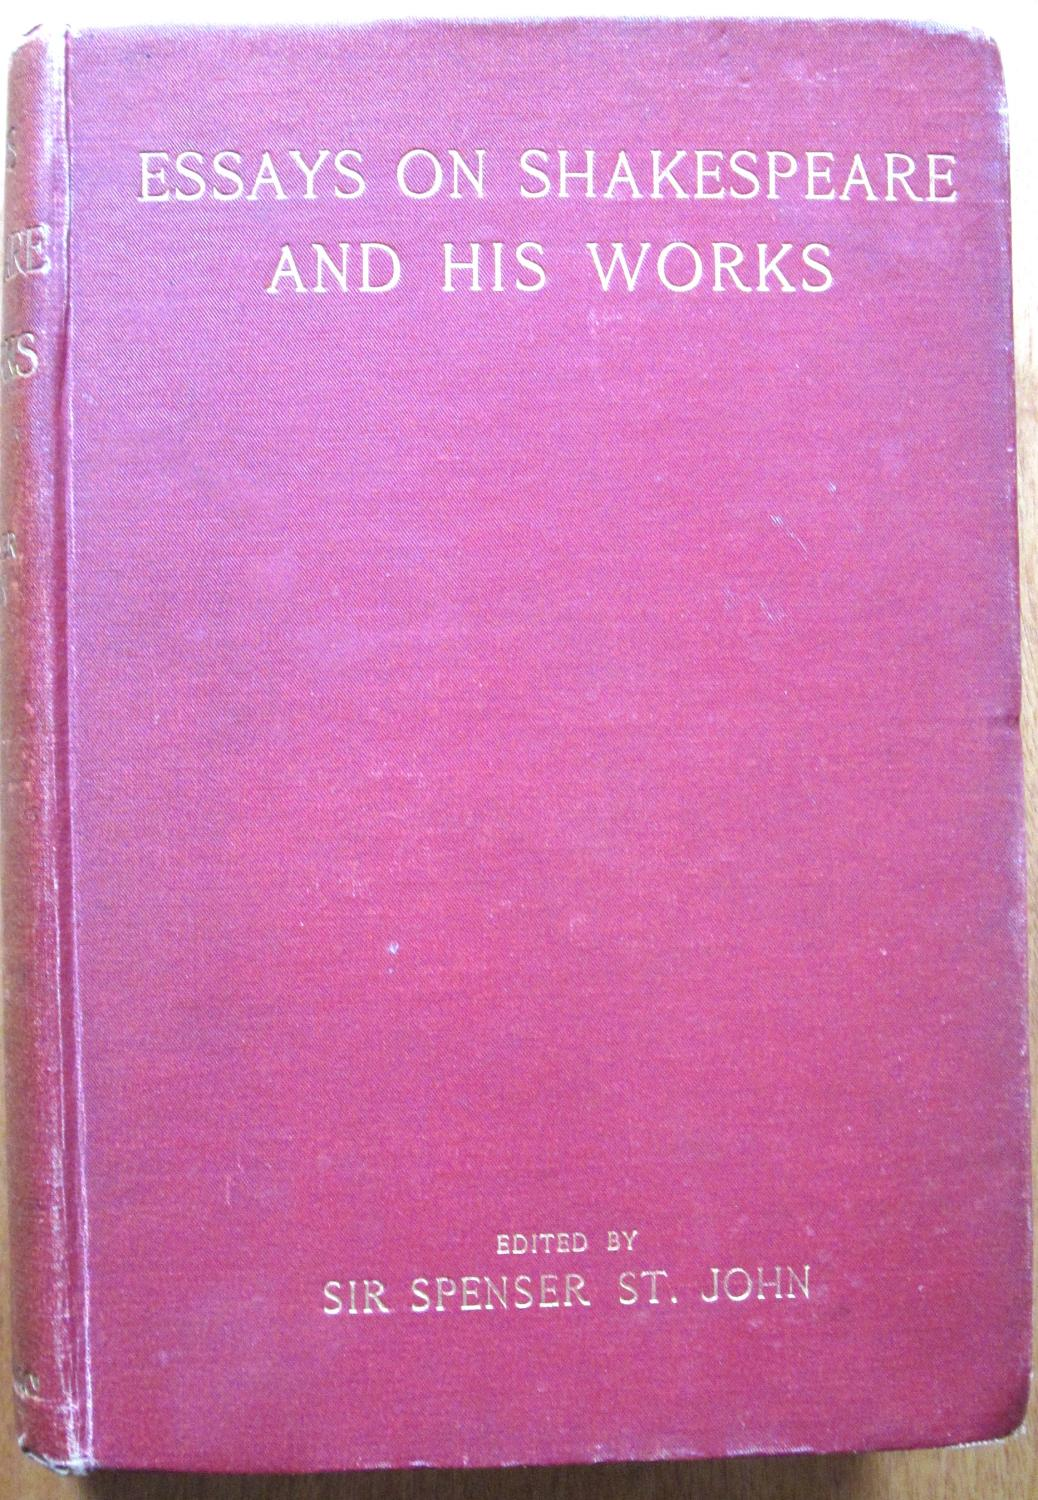 works of shakespeare first edition hardcover abebooks